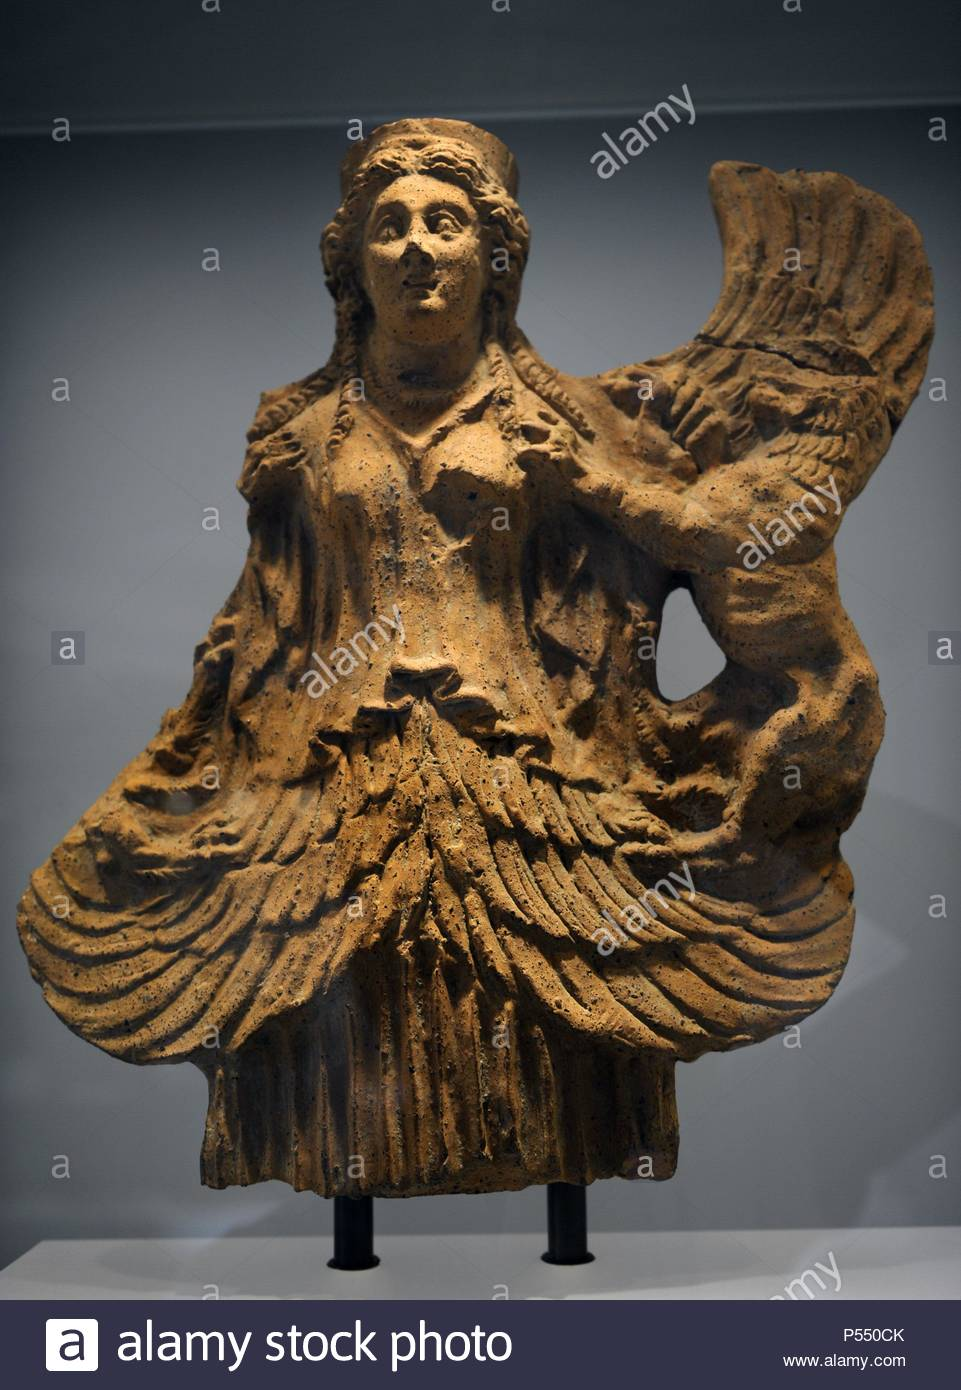 Greek Art. Archaic Period. Winged goddes who tamed wild animals. In this case two lions. Had been introduced into Greece and Italy in the 8th century BC by merchants and itinerants artisans. Terracotta. Ny Carlsberg Glyptotek. Copenhagen. Denmark.. - Stock Image